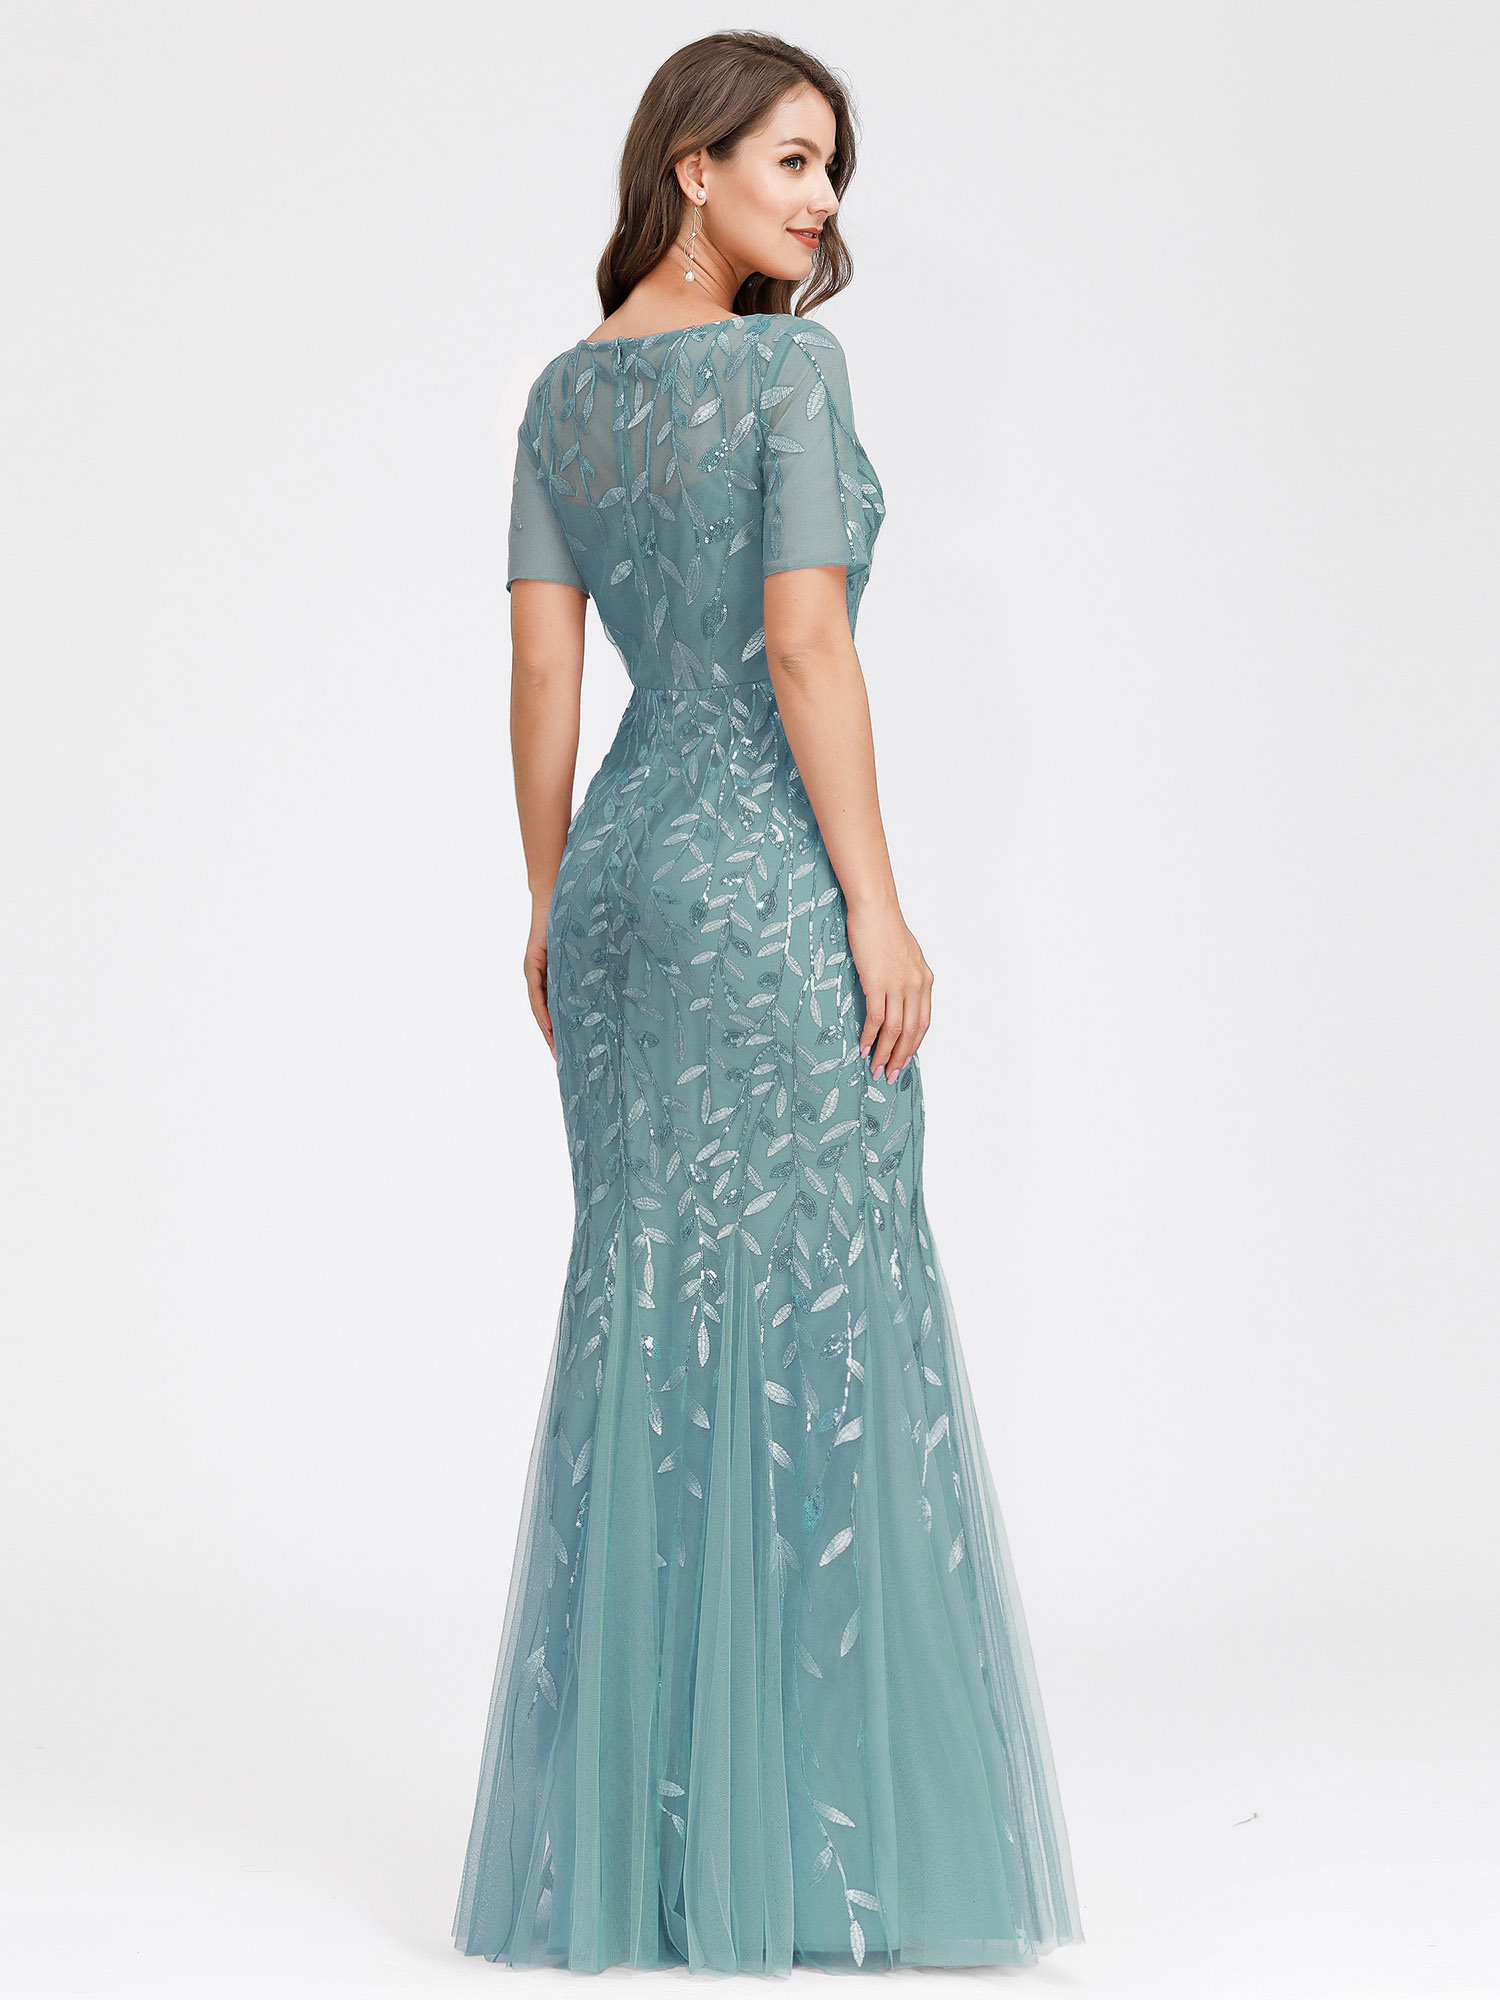 Ever-pretty-US-Mermaid-Evening-Party-Dresses-Formal-Cocktail-Celebrity-Prom-Gown thumbnail 5